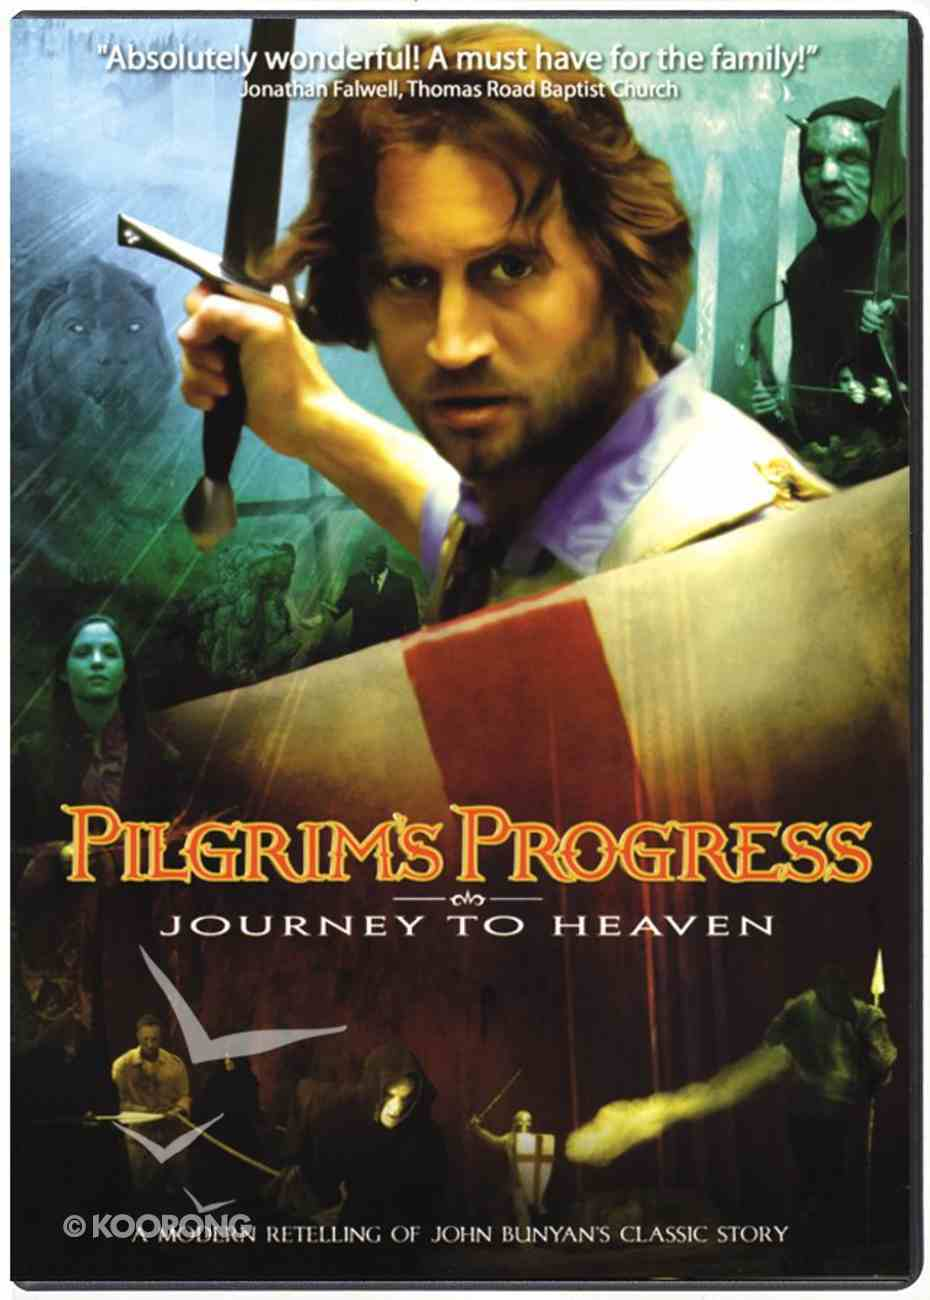 Pilgrim's Progress: Journey to Heaven DVD